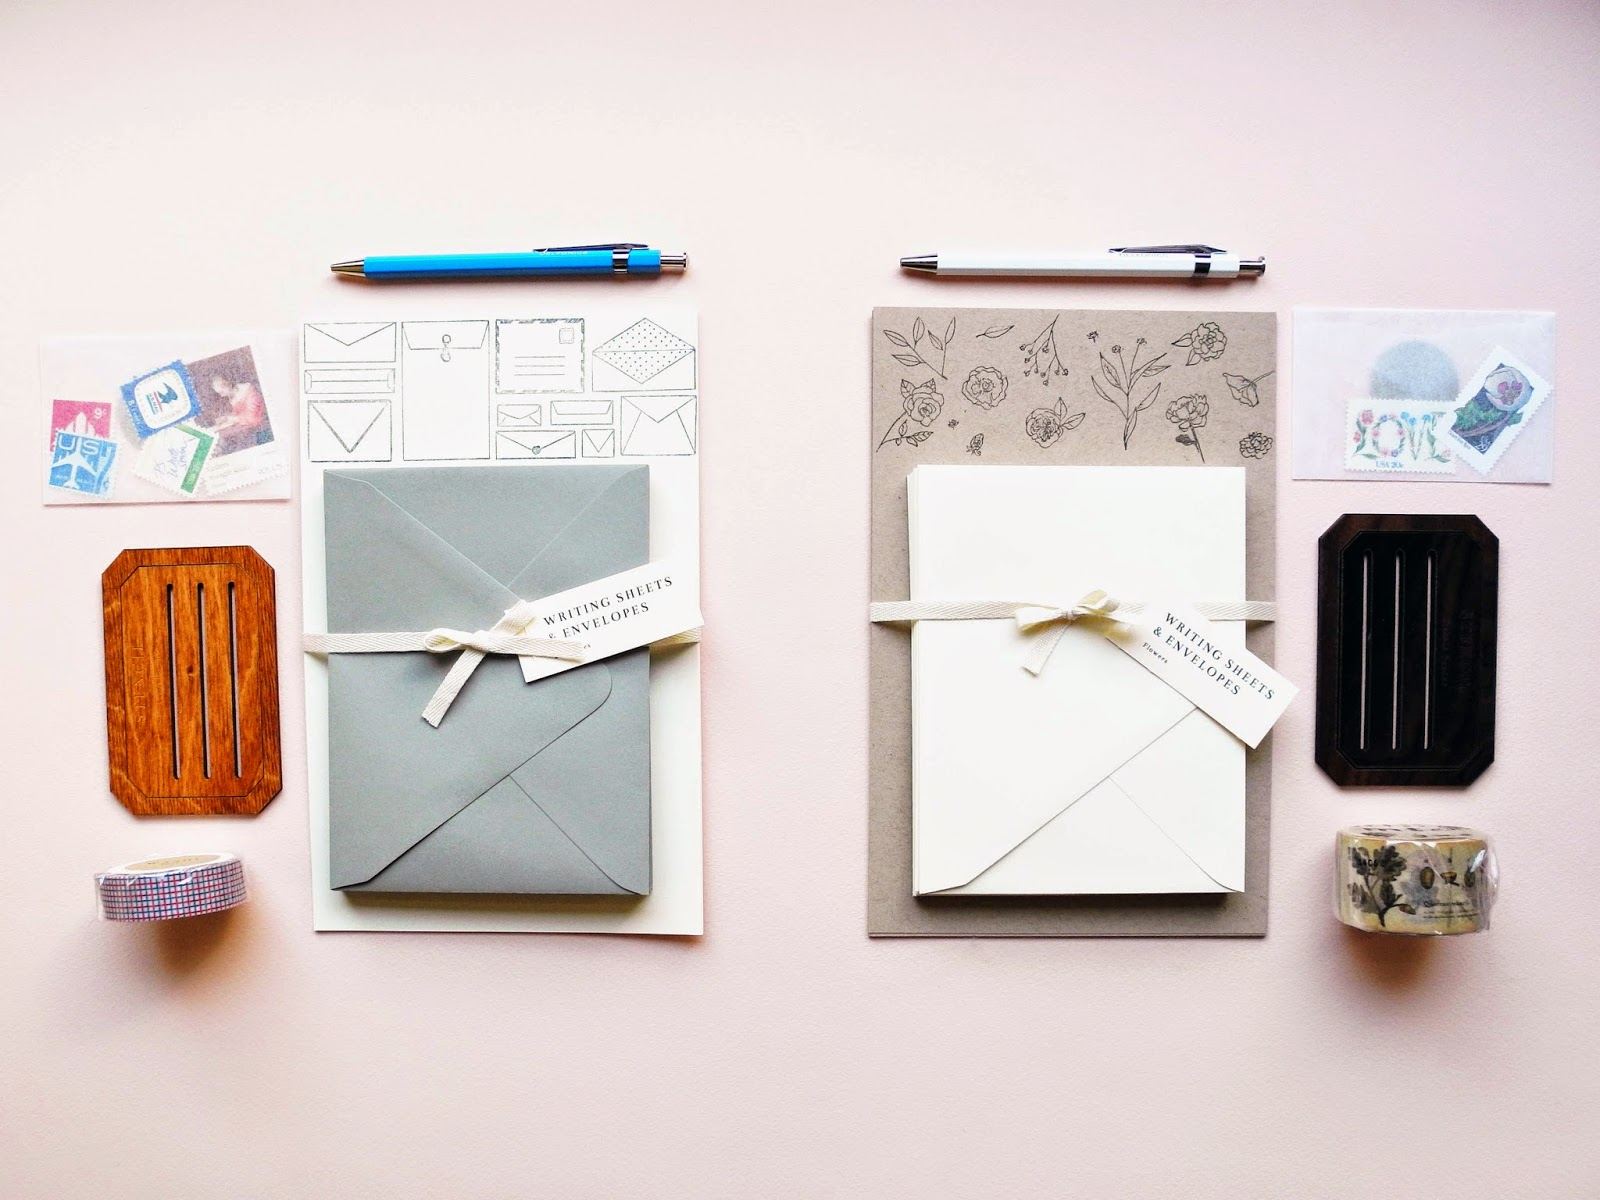 the letter writing kit